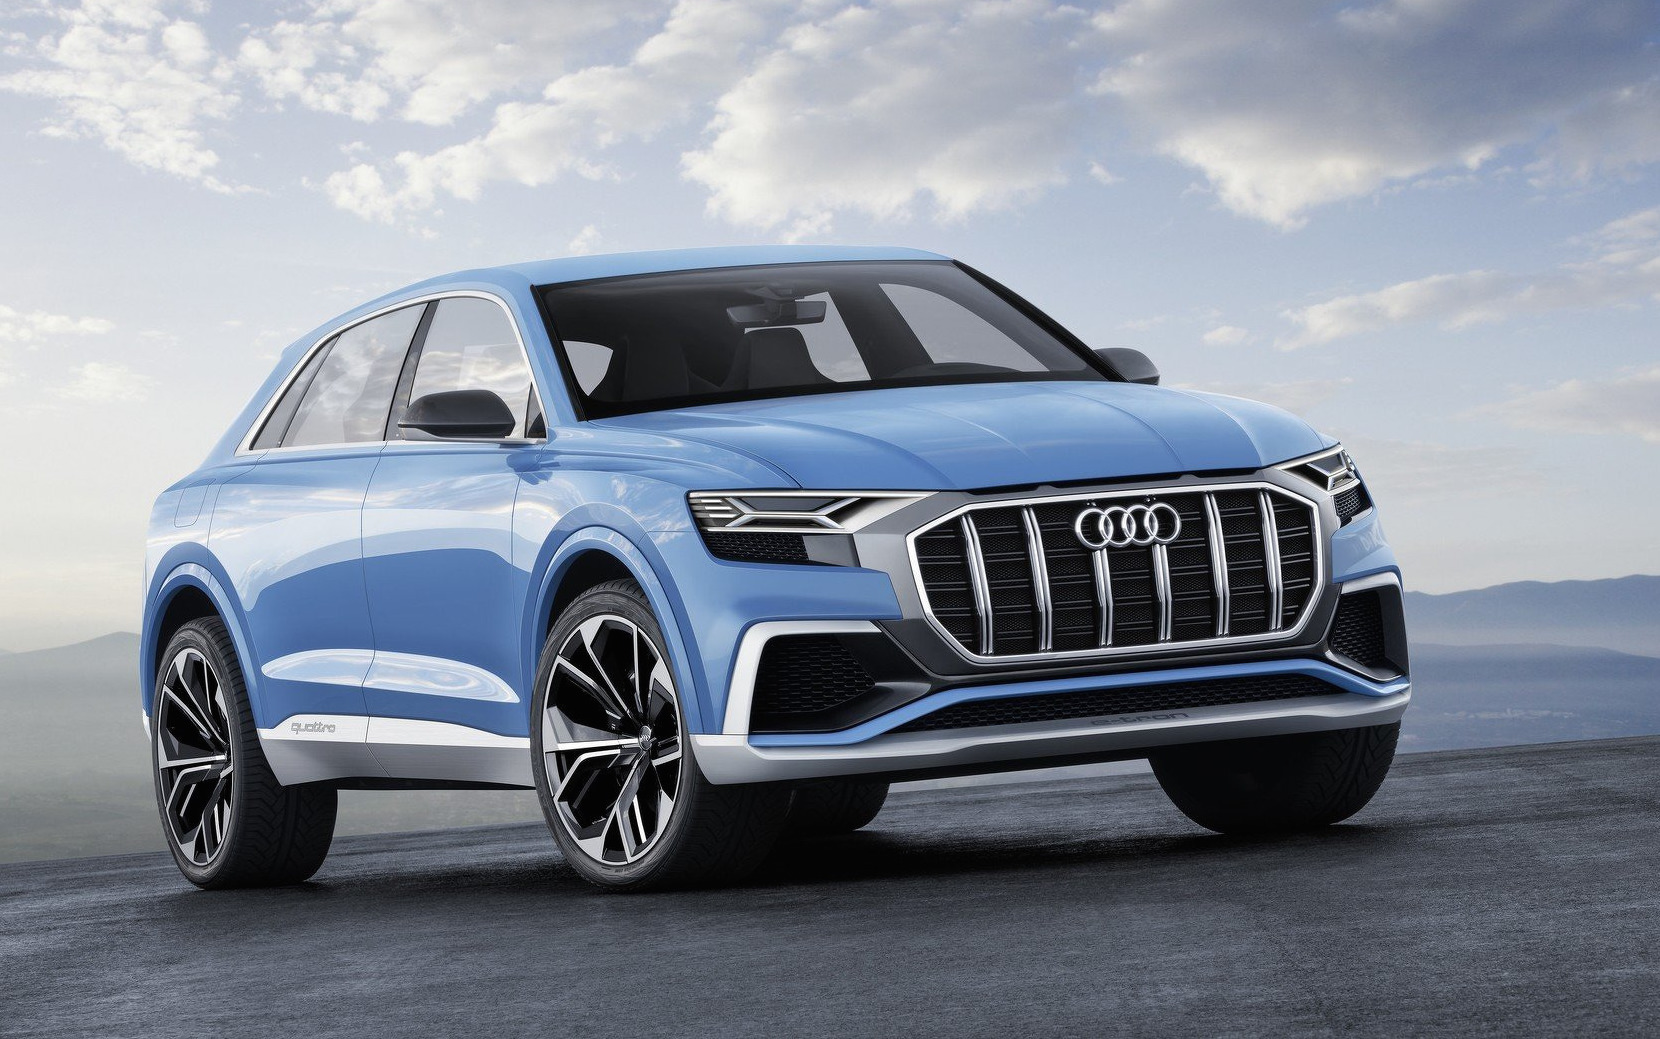 The Audi SQ5 now comes with petrol power